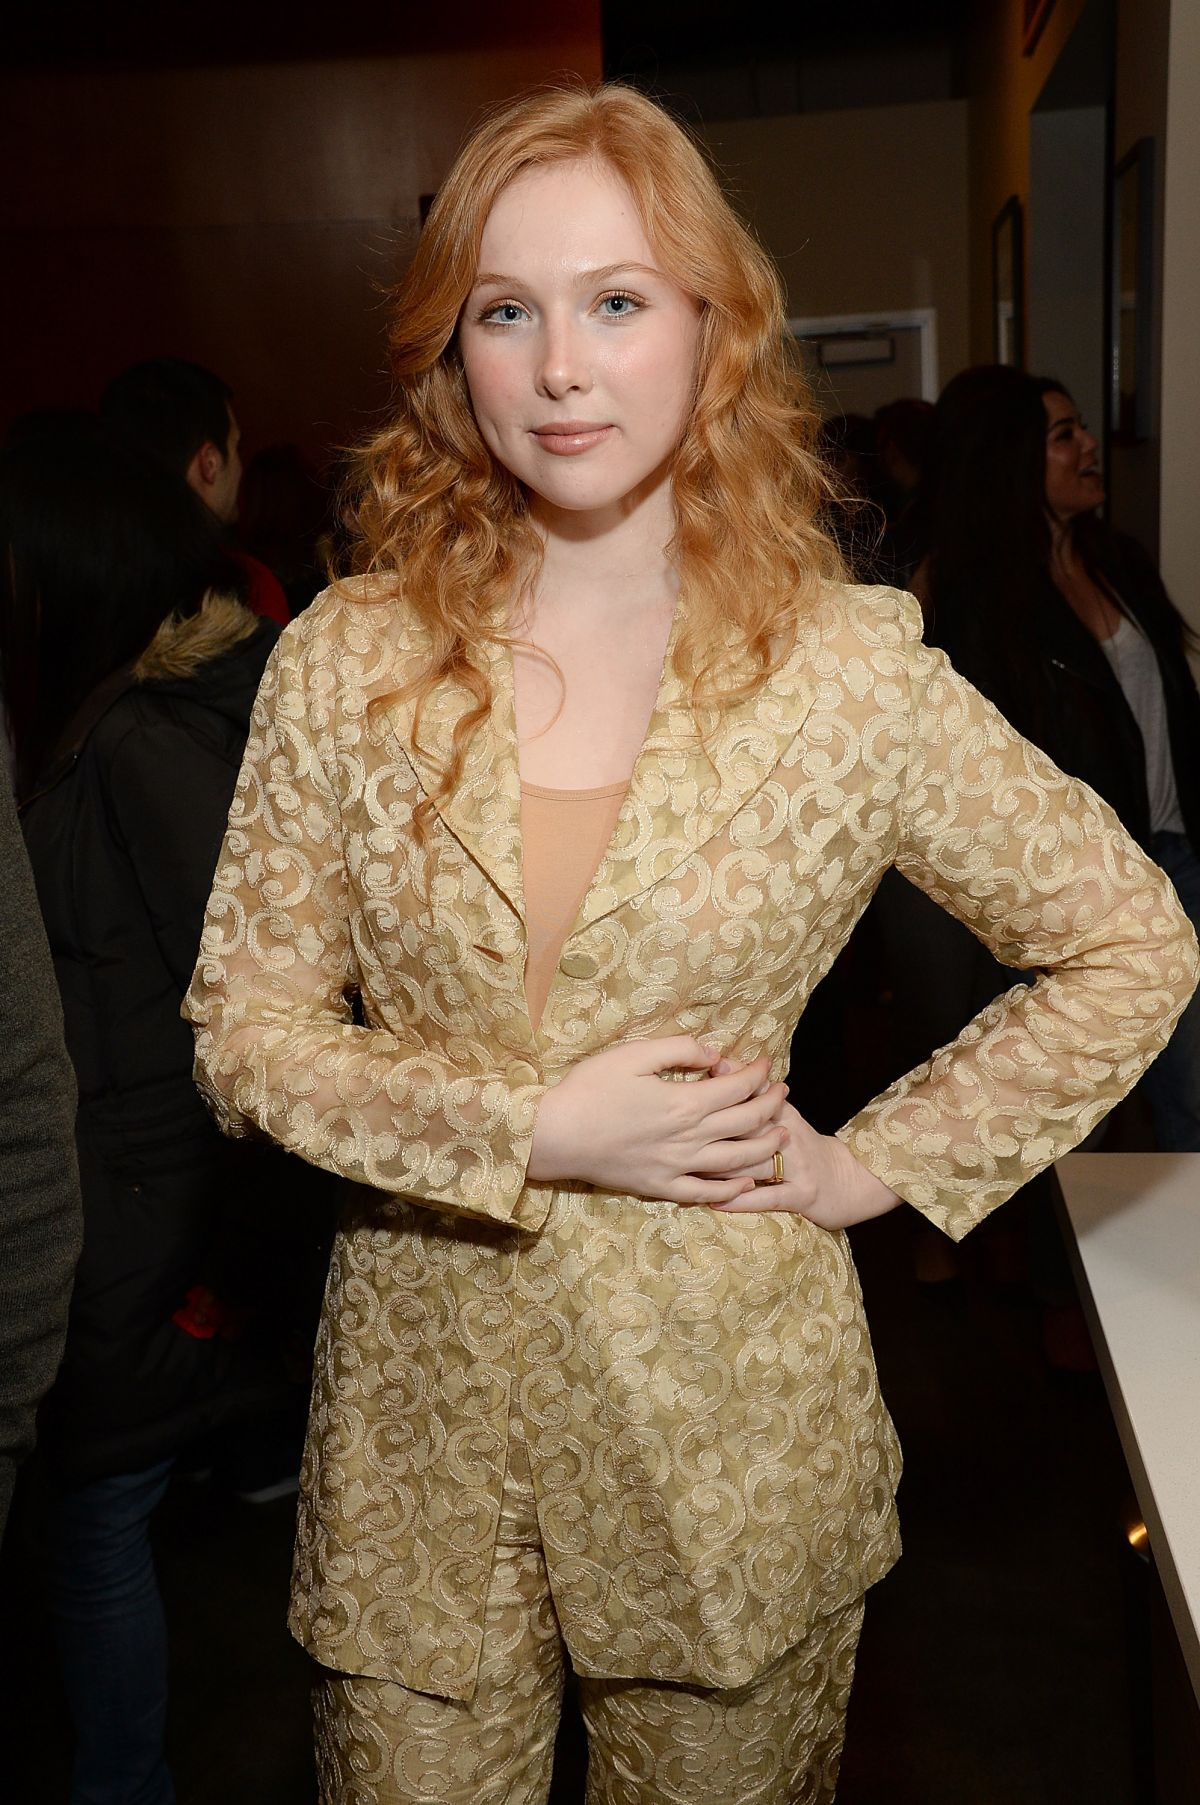 MOLLY QUINN at Nerdist + Xbox Live App Launch Party in Venice